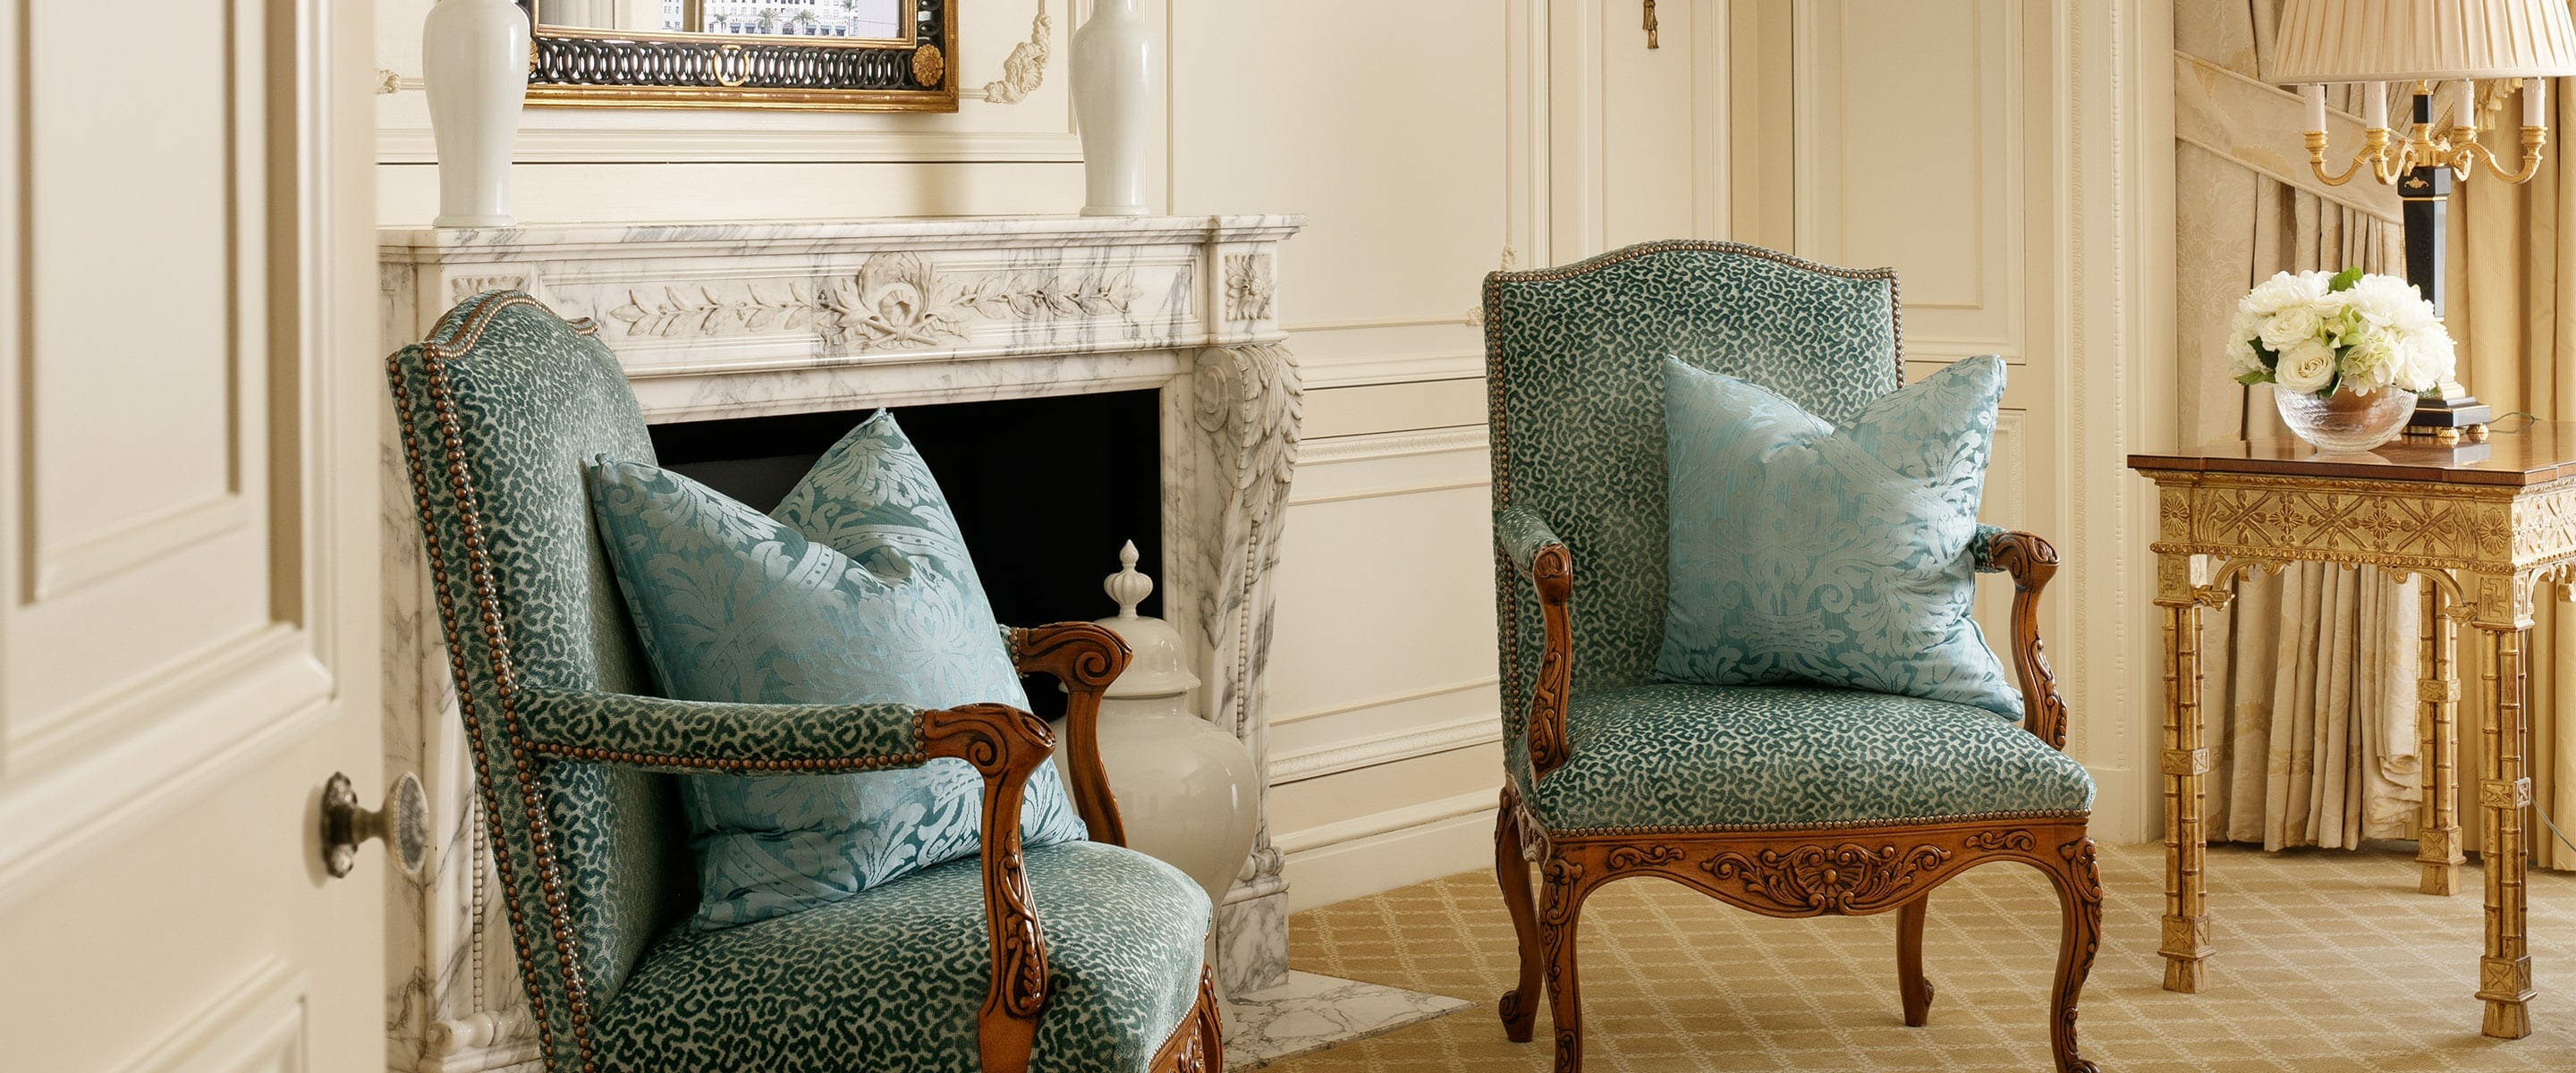 Two luxury lounge chairs by the fireplace at the Westgate Room restaurant.